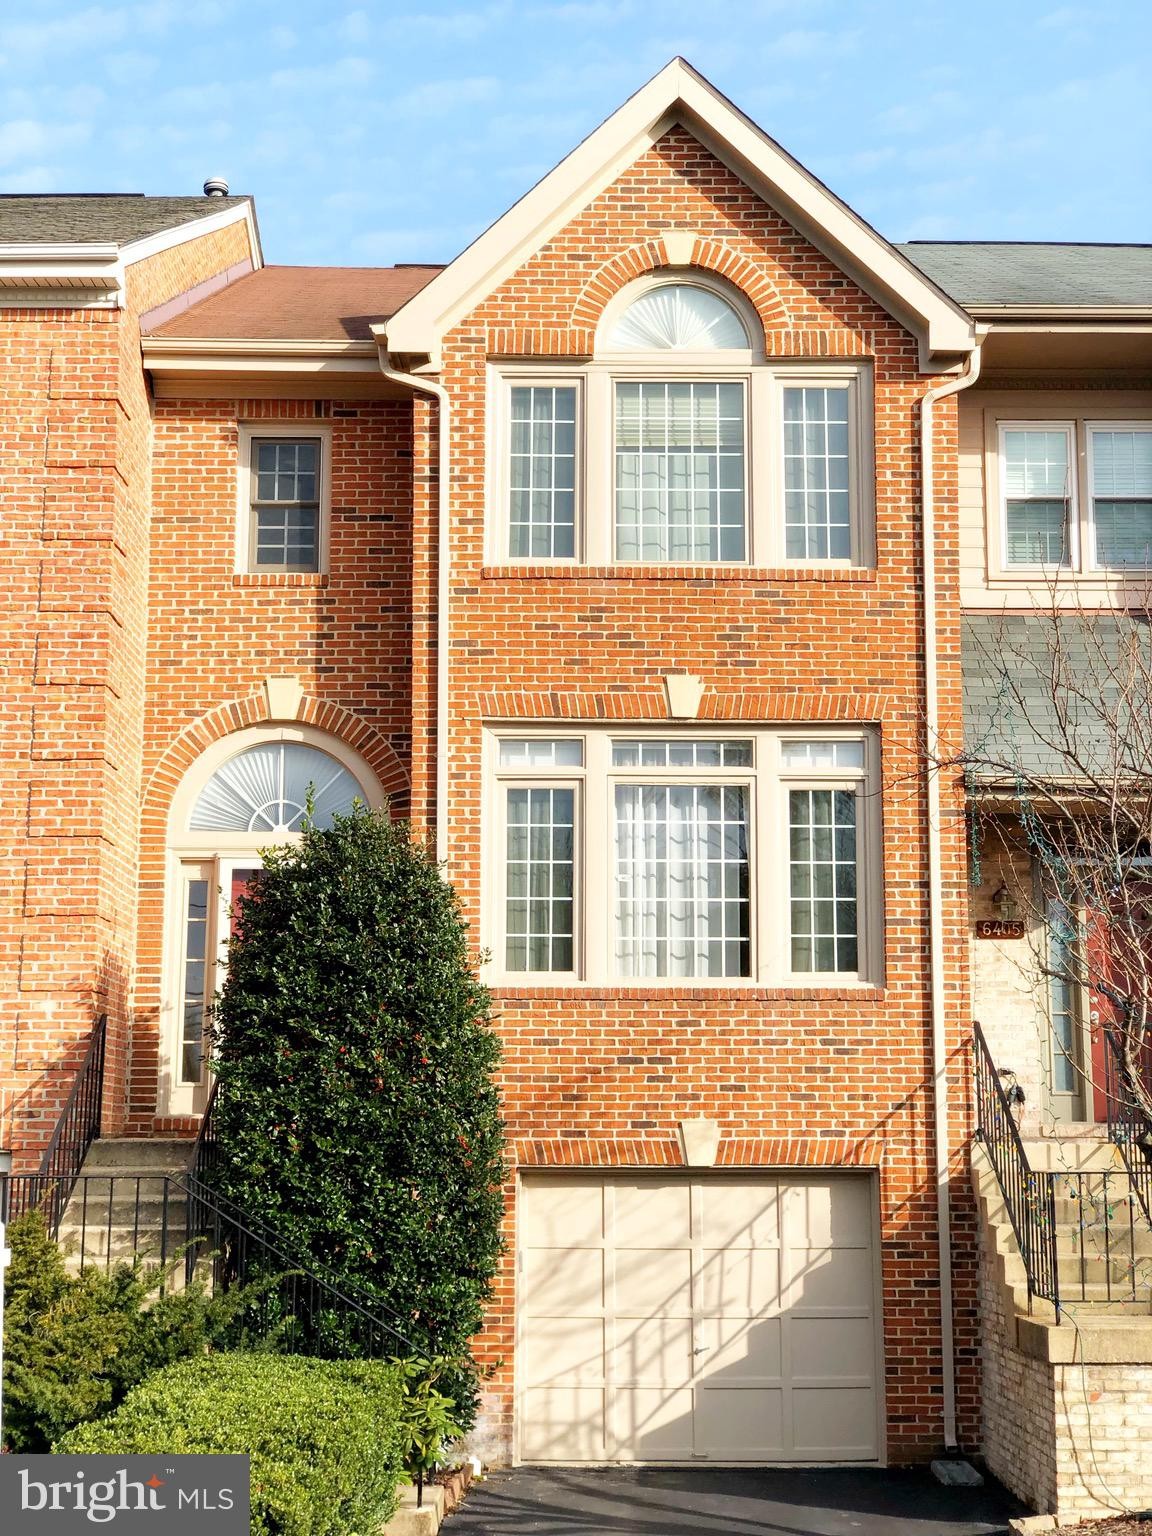 Commuter~s Dream! Brick Townhome w/ Garage just 2 Miles from the Franconia/Springfield Metro. Enjoy Shopping & the Convenience of 495/395/95 at your footsteps. Gorgeous vaulted ceilings in Bedrooms, Walk-in Closets, Freshly Painted, Cozy Fireplace, Fully Fenced Yard with Paver Patio, Great Deck for entertaining, Open Floorplan, Granite Countertops, Stainless Steel Appliances. Walk-out Basement backing to Trees. Great Privacy. Perfect place to call Home